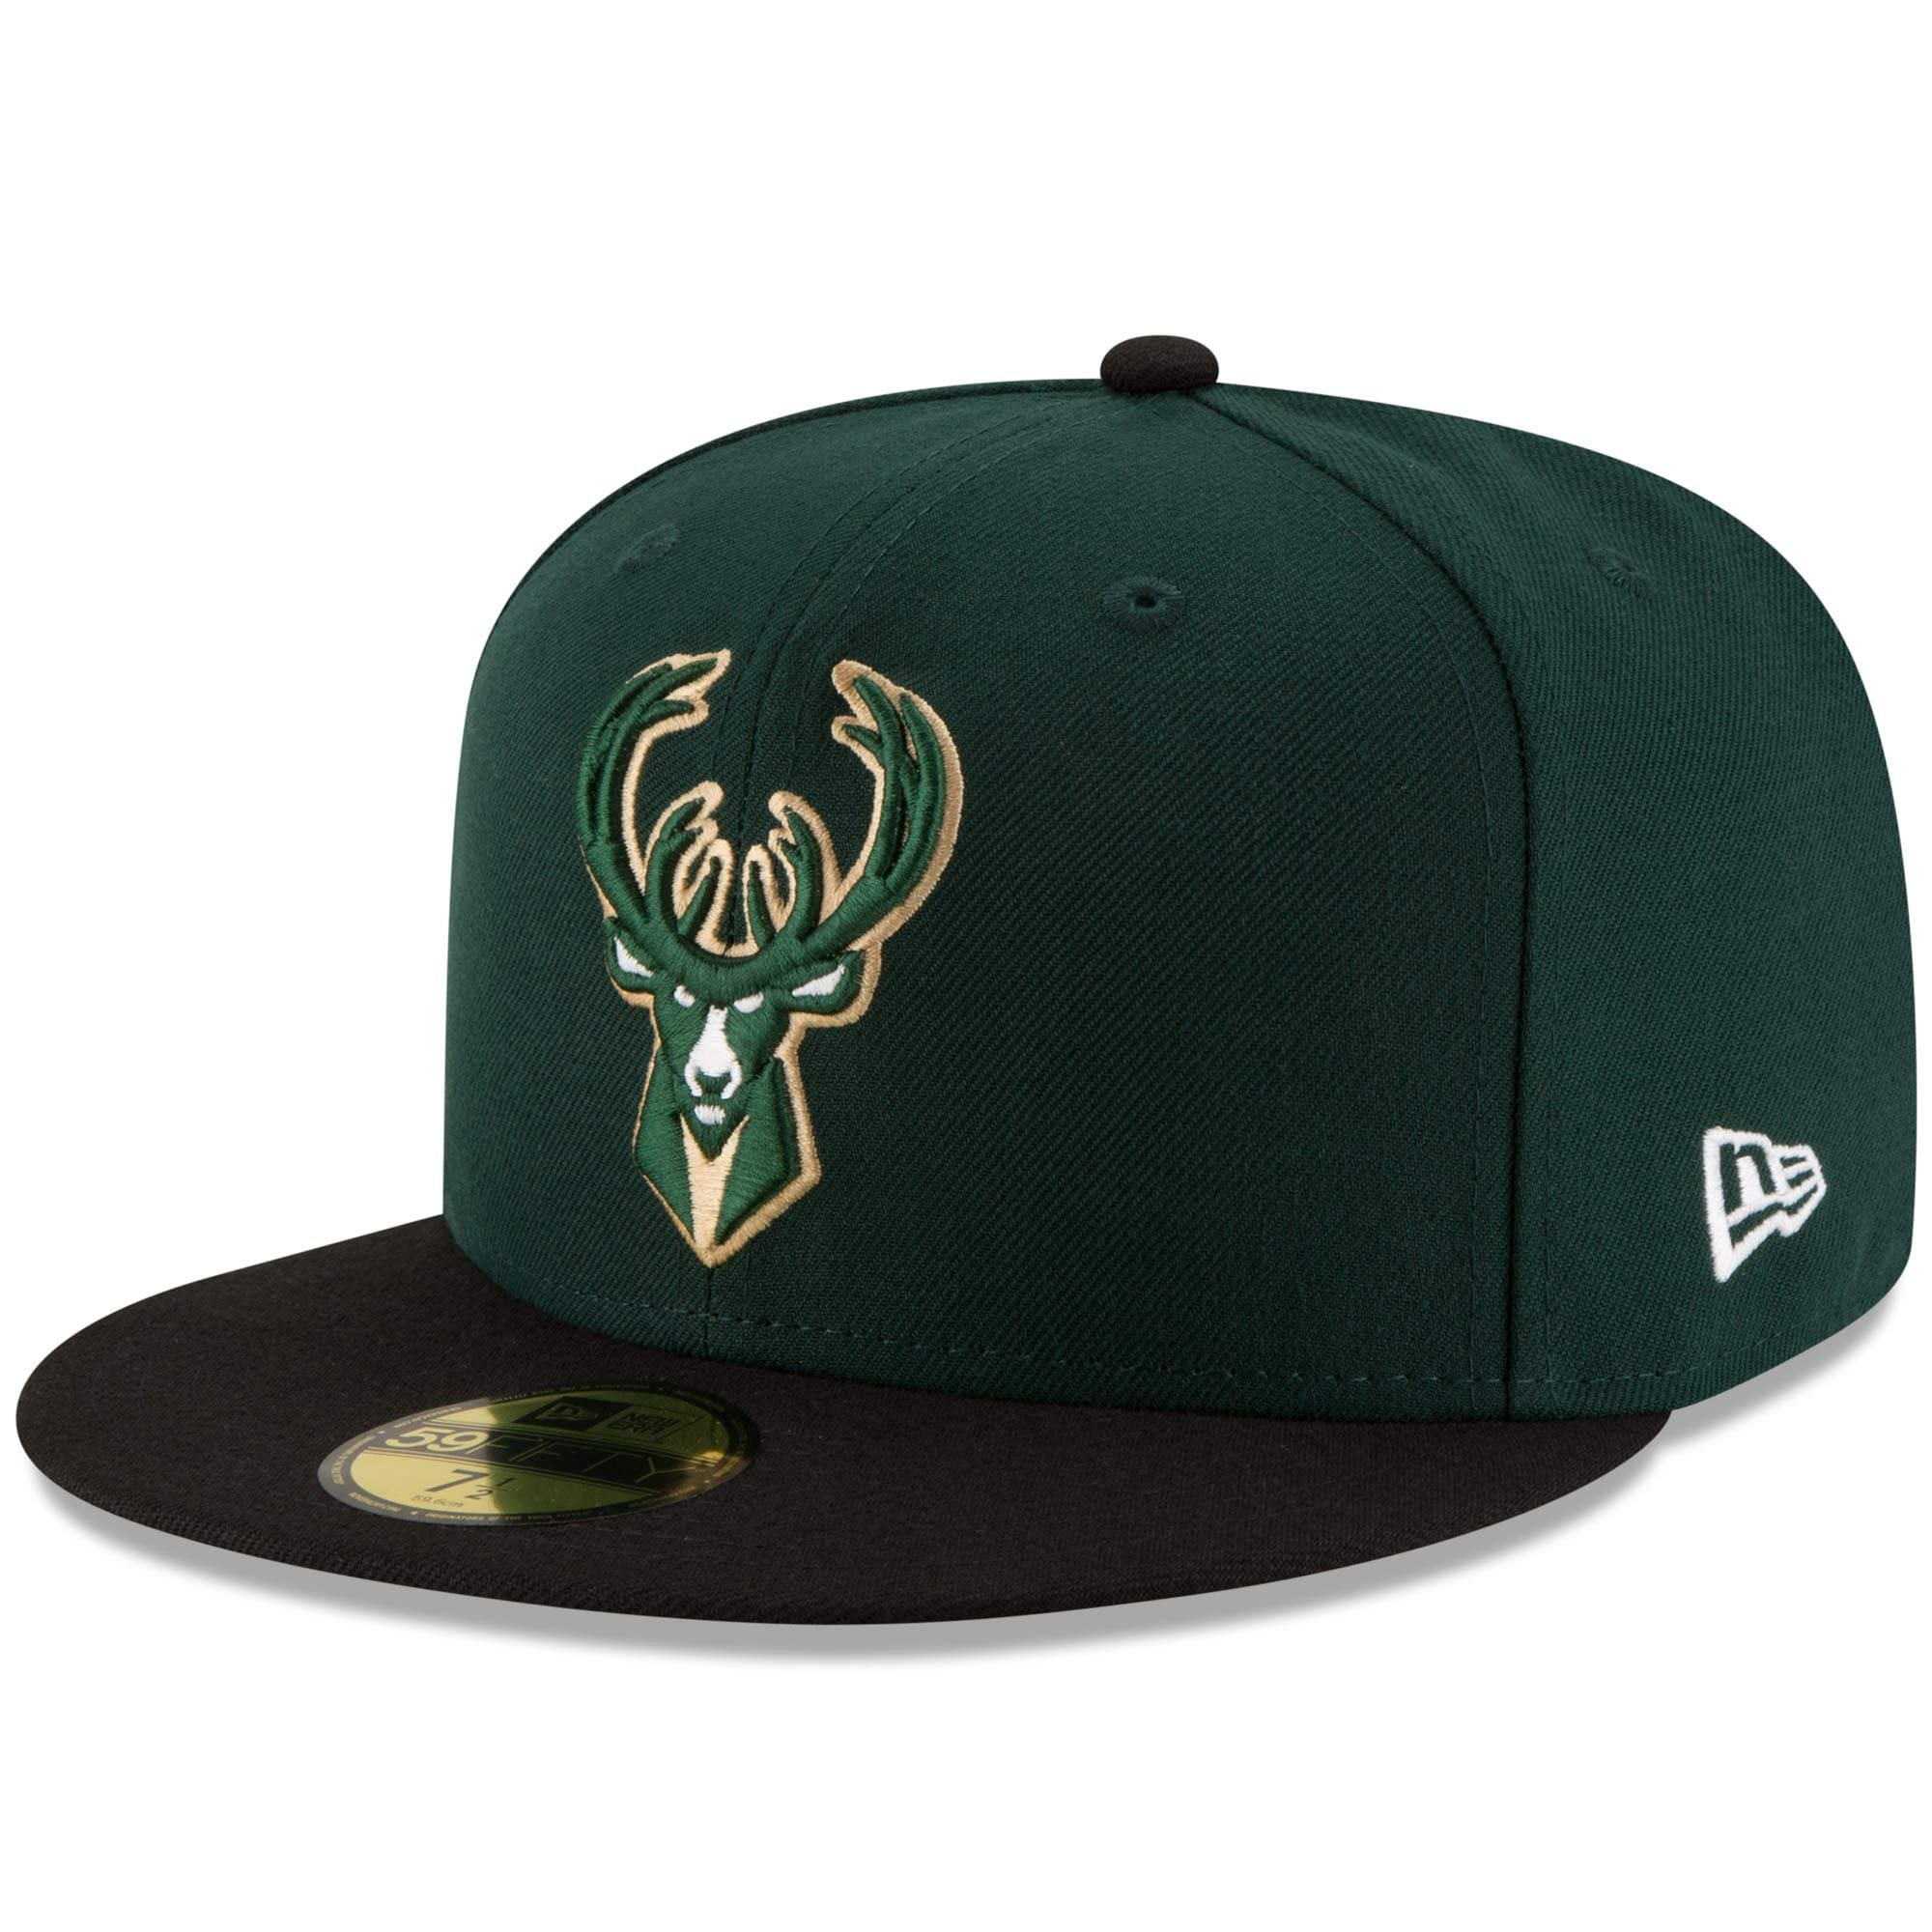 Milwaukee Bucks New Era Official Team Color 2Tone 59FIFTY Fitted Hat - Green/Black